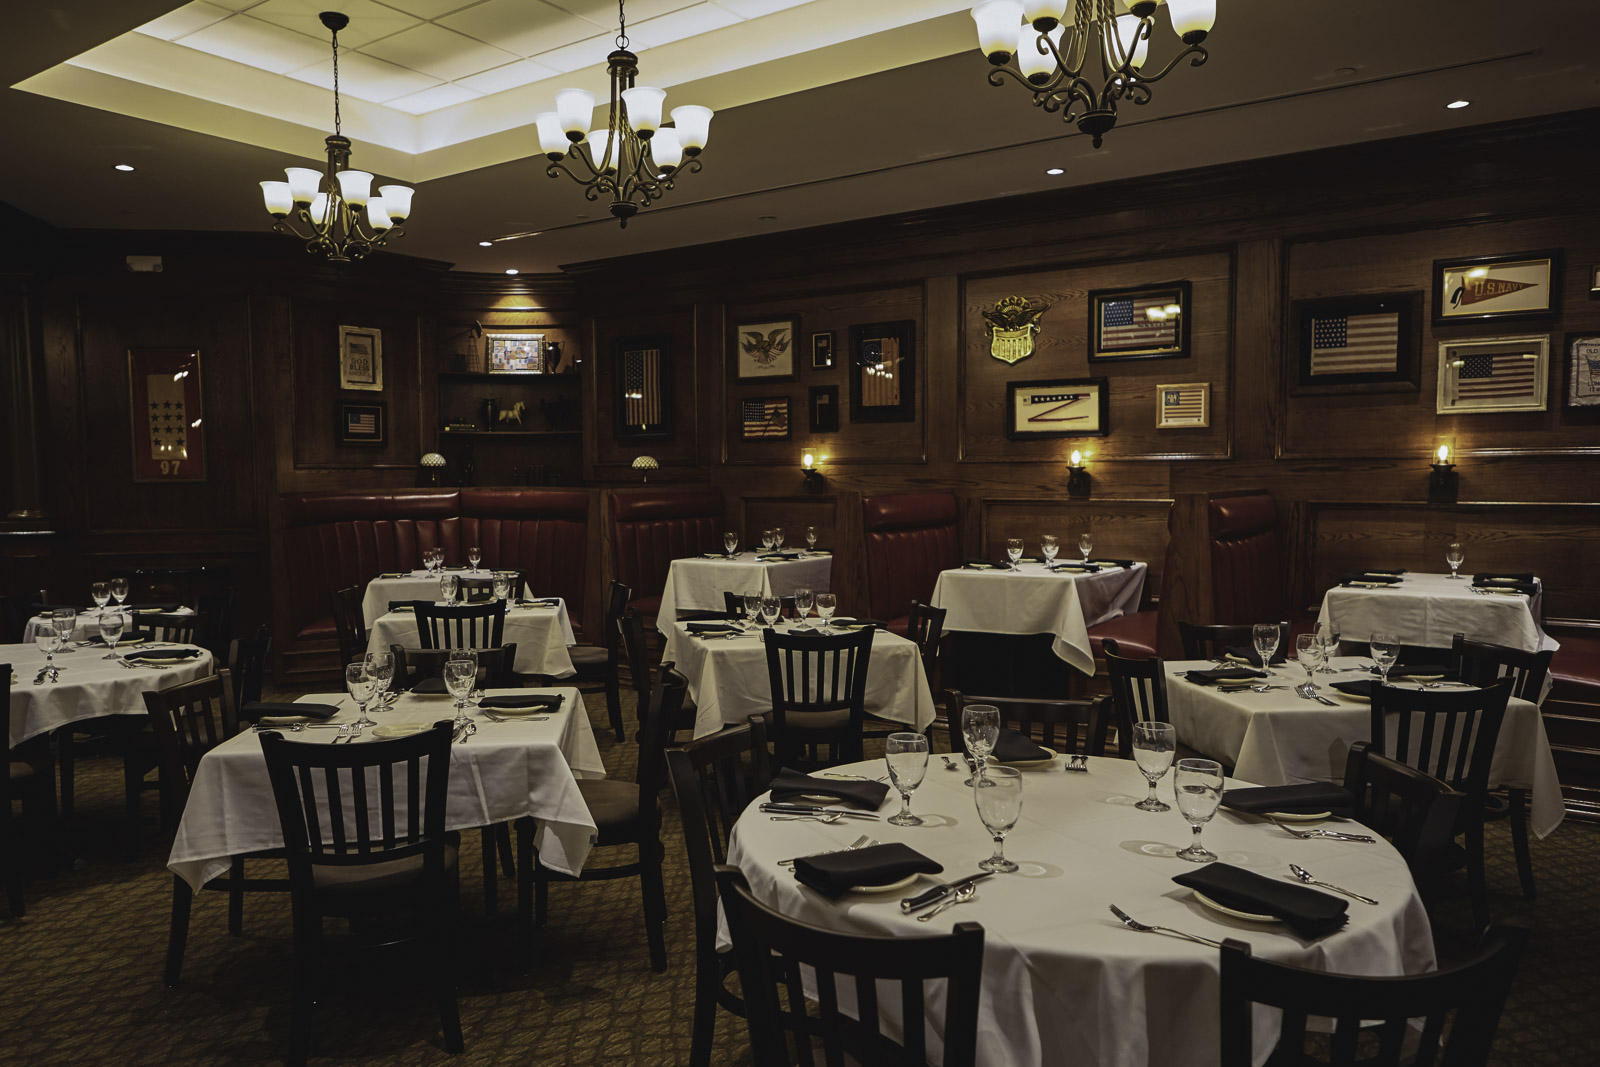 Bob's Steak & Chop House - Edinburg, TX (Dining Room)